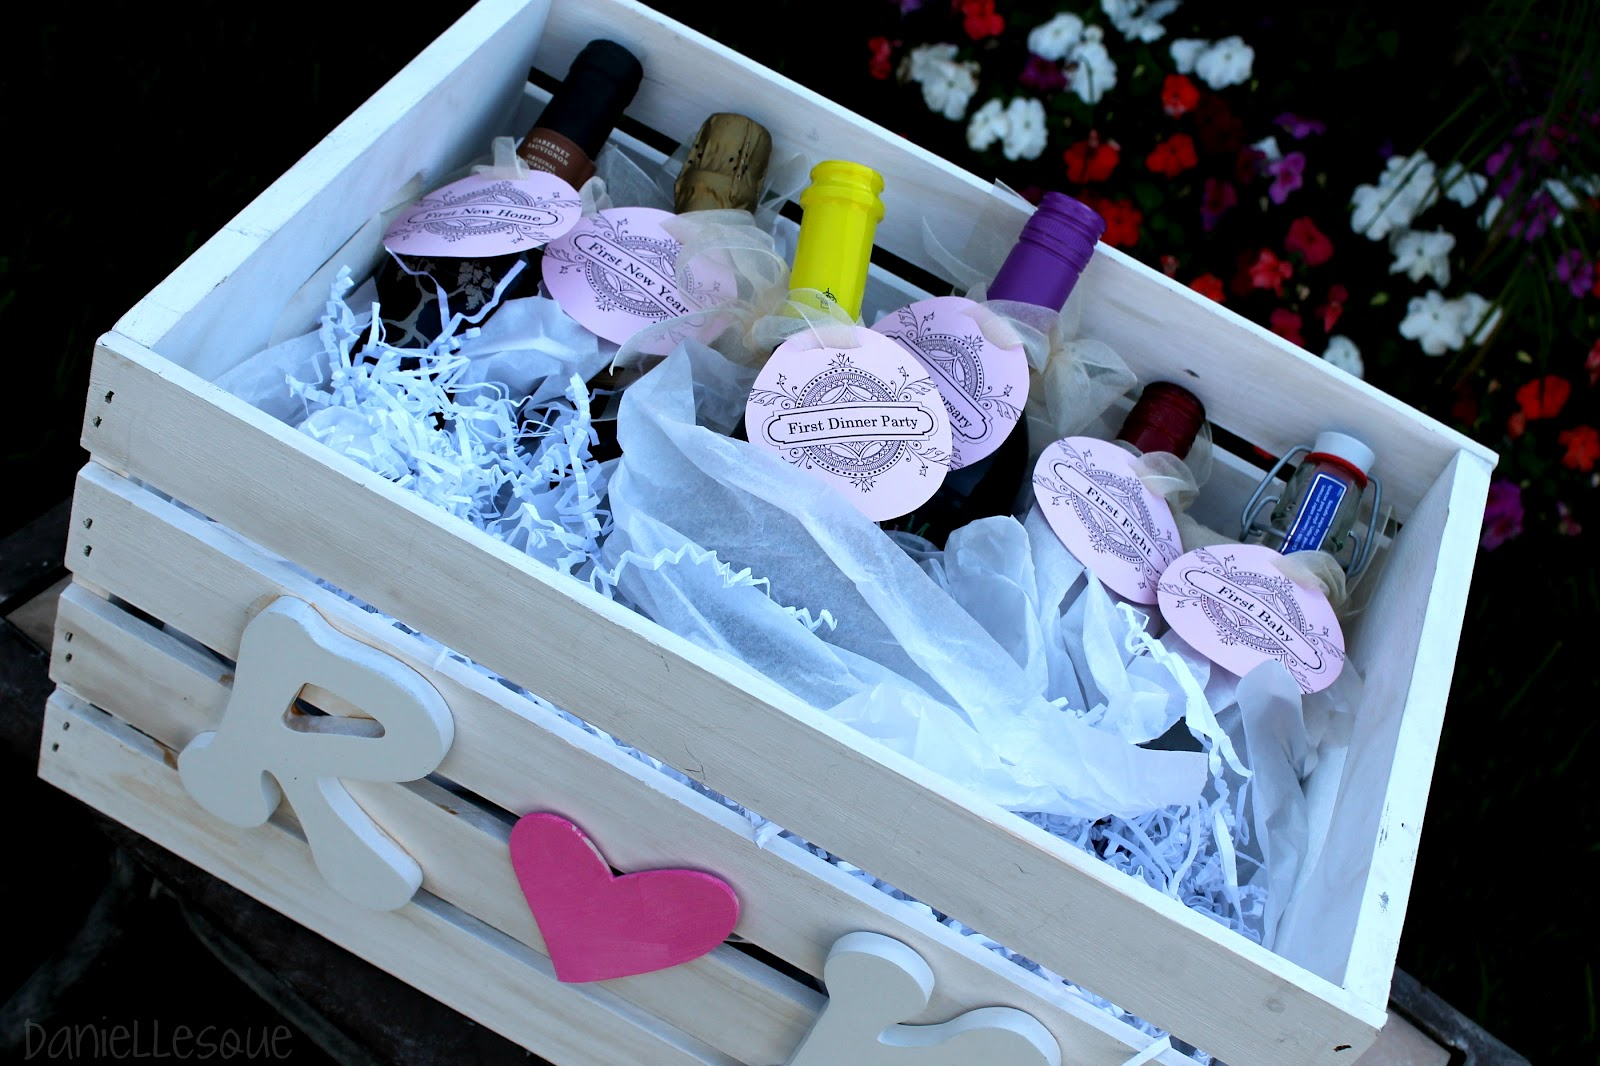 Bridal Shower Gift Basket Ideas For Bride : daniellesque: Bridal Shower Gift: Basket of Firsts